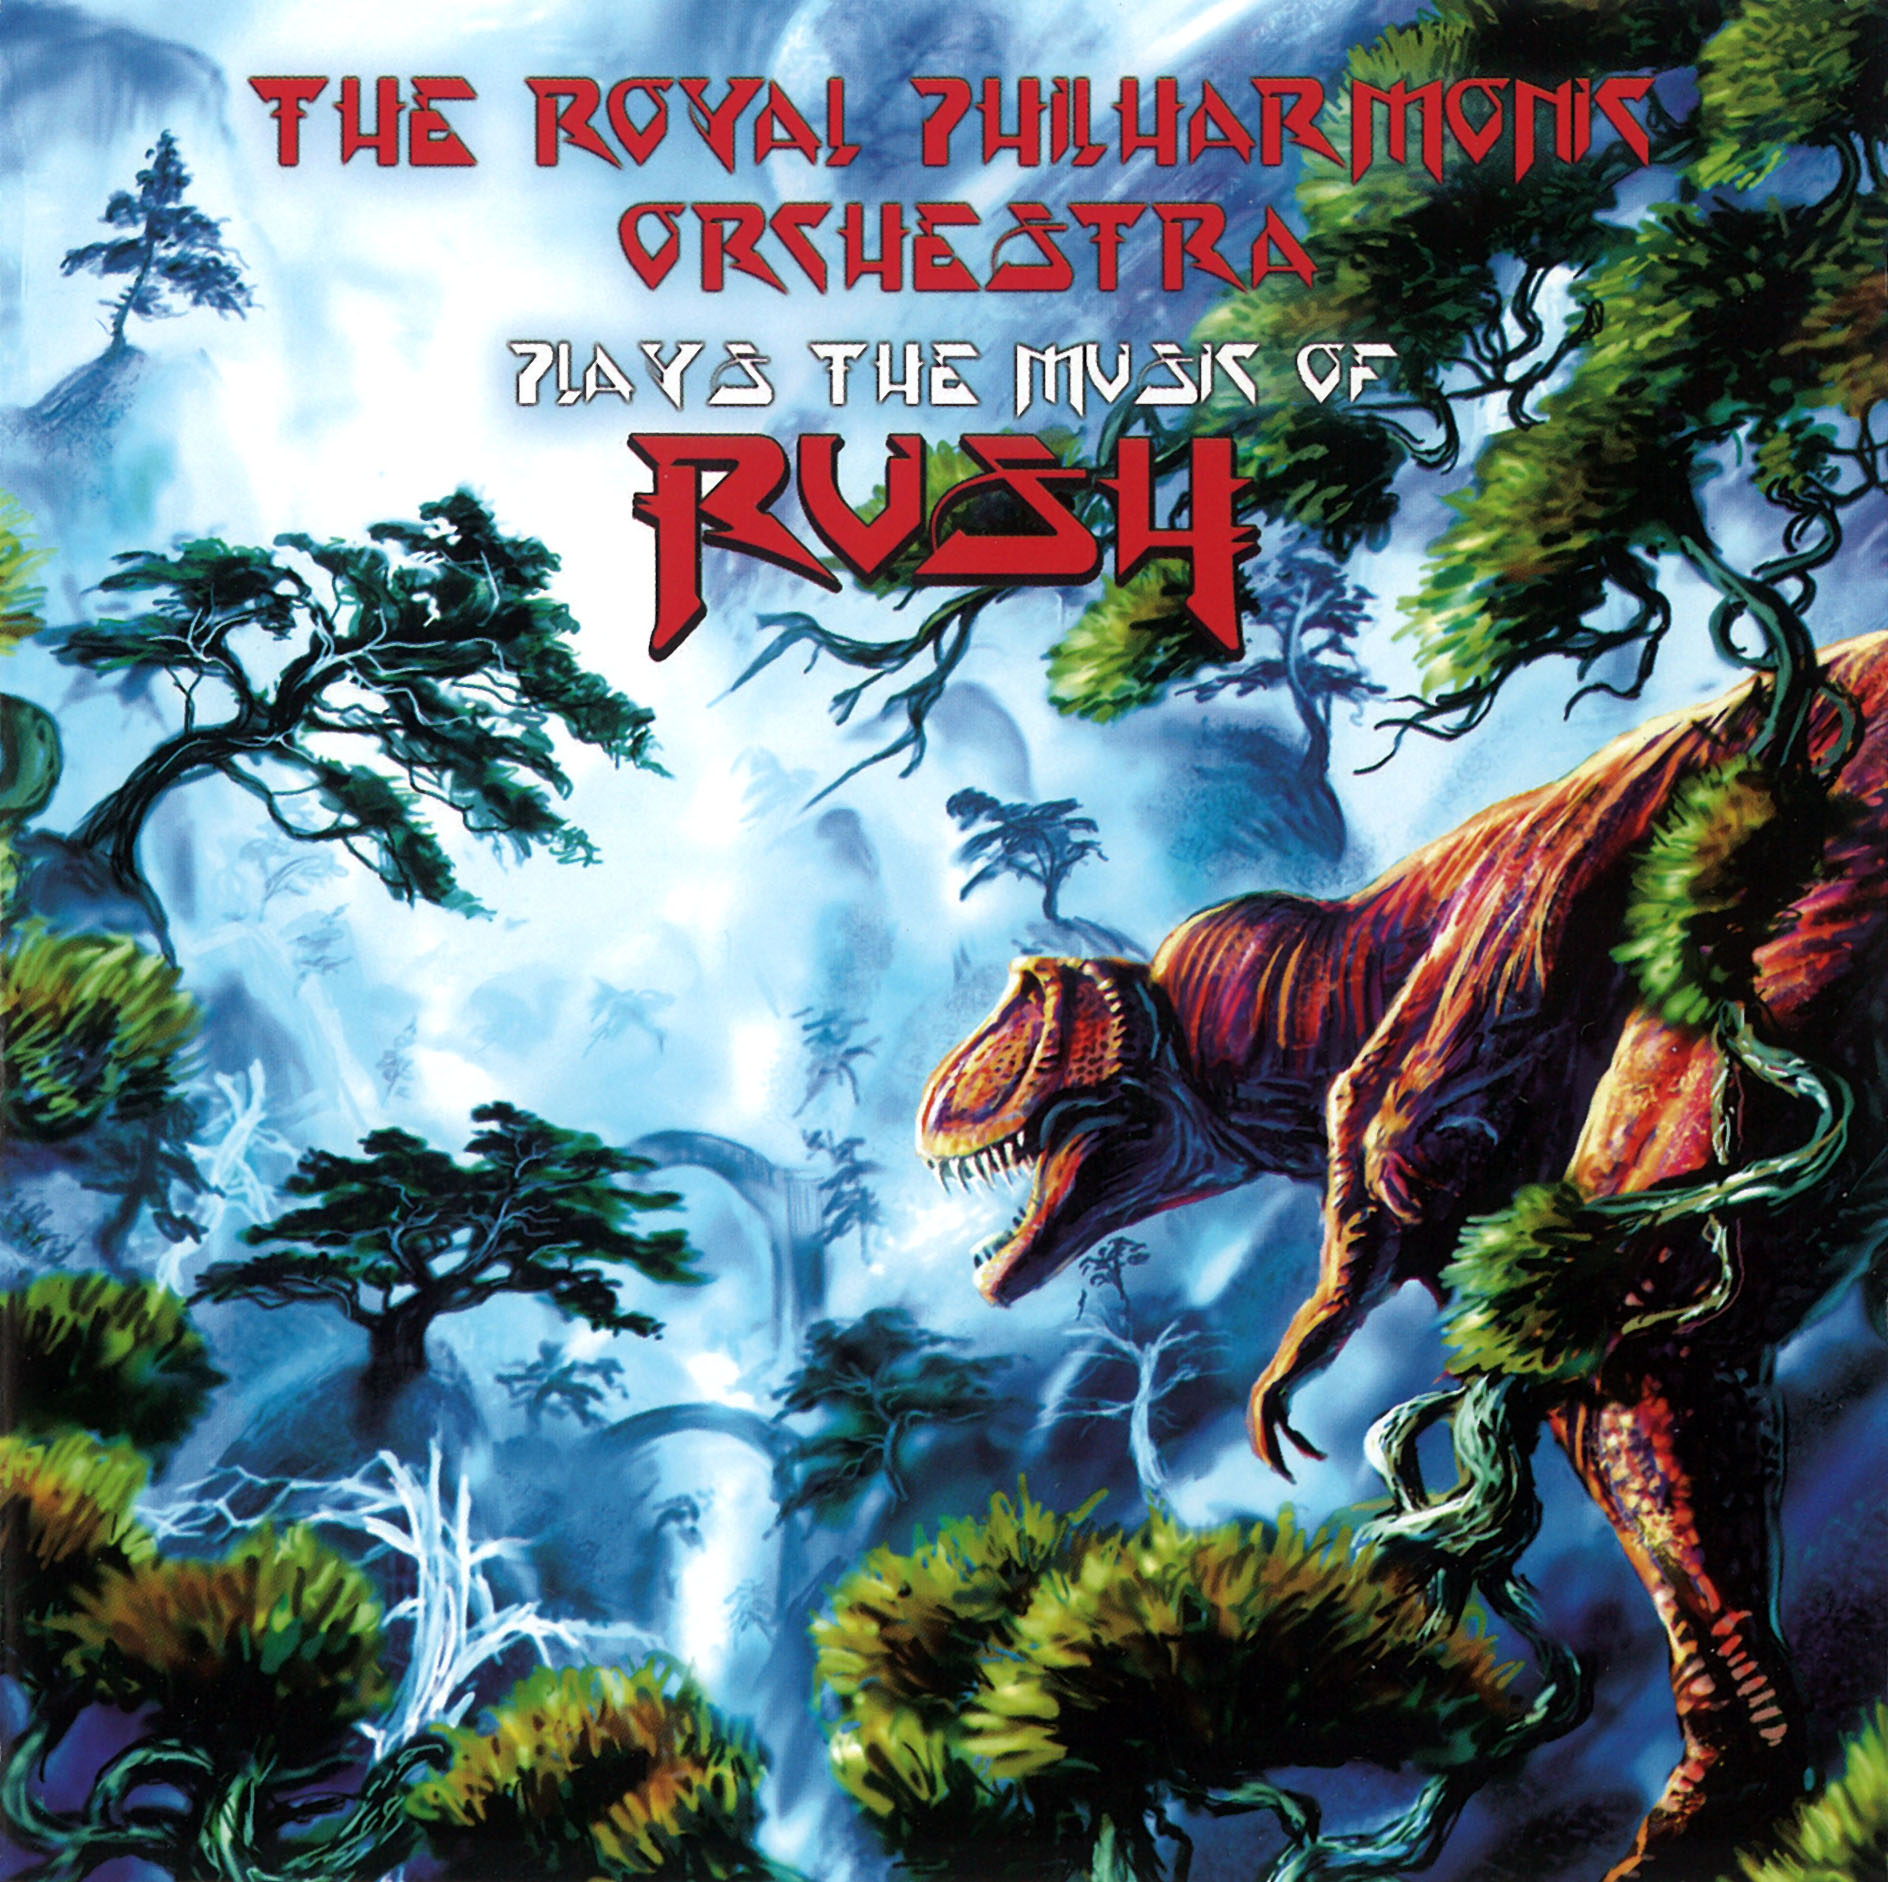 The Royal Philharmonic Orchestra Goes To The Bathroom: The Royal Philharmonics Orchestra Plays The Music Of Rush